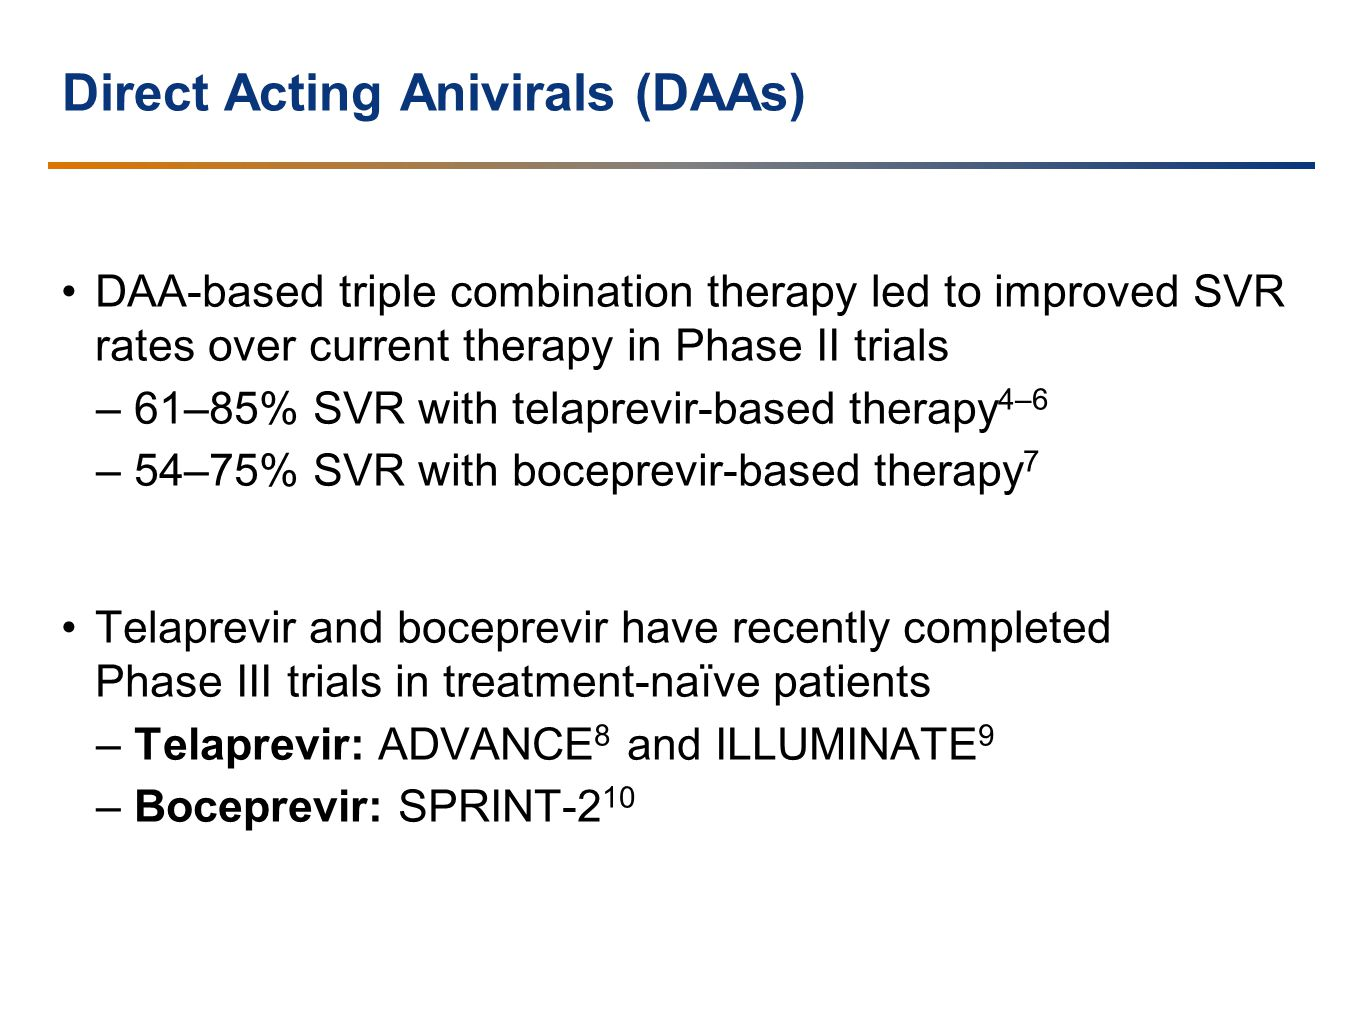 Direct Acting Anivirals (DAAs) DAA-based triple combination therapy led to improved SVR rates over current therapy in Phase II trials –61–85% SVR with telaprevir-based therapy 4–6 –54–75% SVR with boceprevir-based therapy 7 Telaprevir and boceprevir have recently completed Phase III trials in treatment-naïve patients –Telaprevir: ADVANCE 8 and ILLUMINATE 9 –Boceprevir: SPRINT-2 10